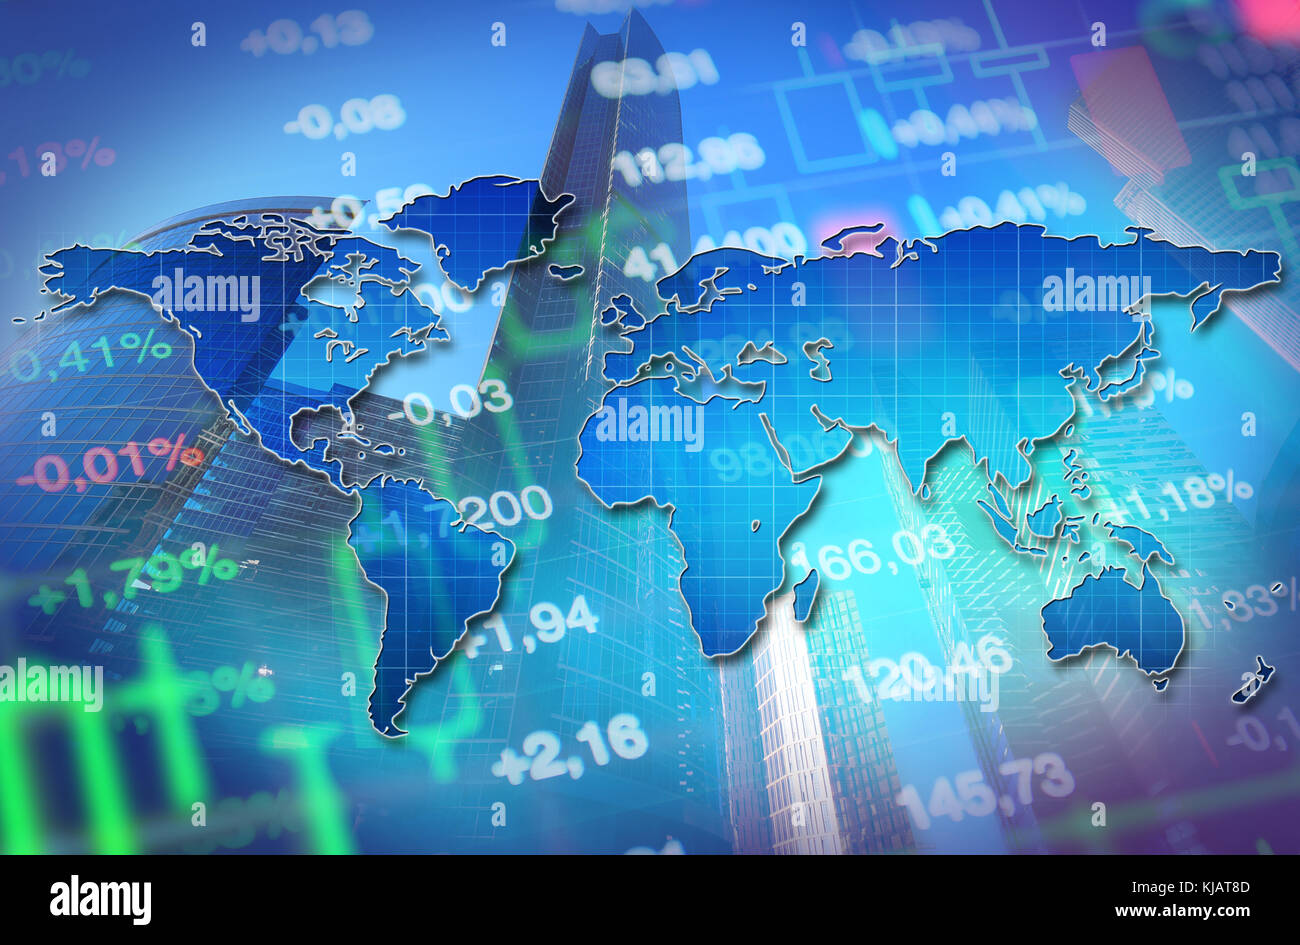 stock market banner stock photos & stock market banner stock images